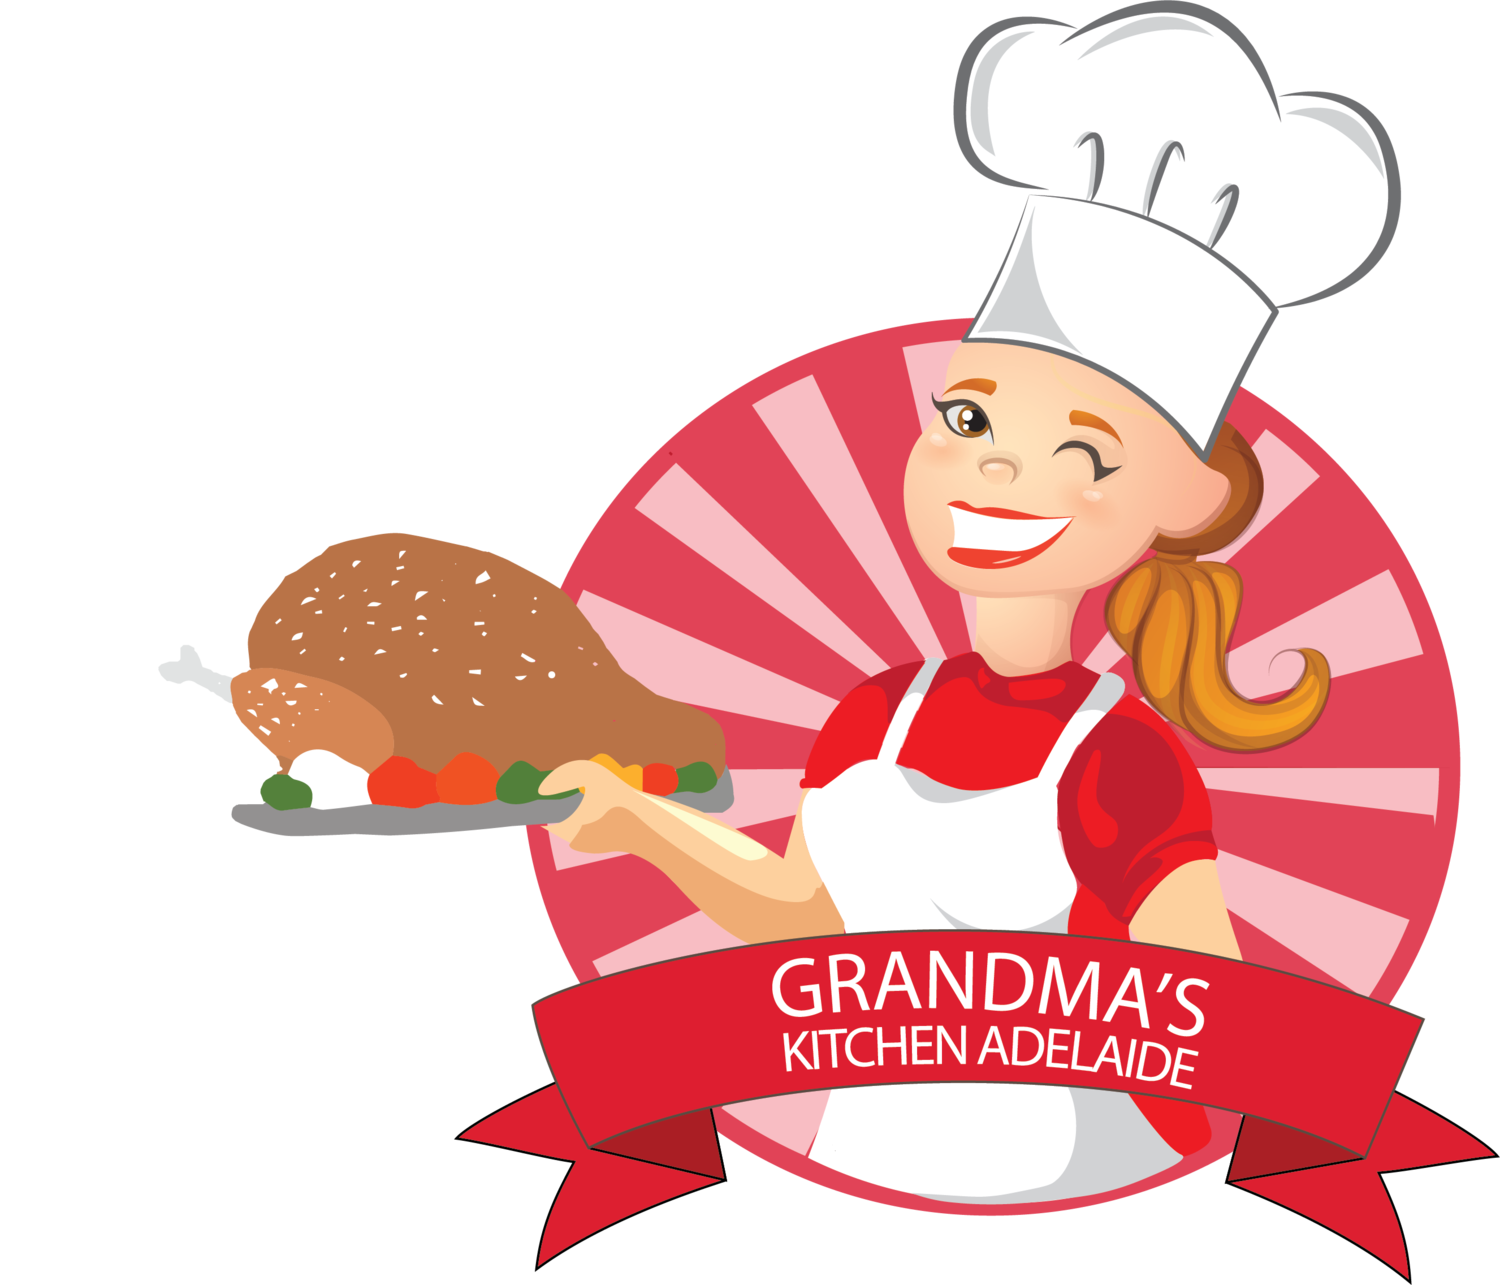 S kitchen adelaide . Grandma clipart grandma cook clipart black and white download